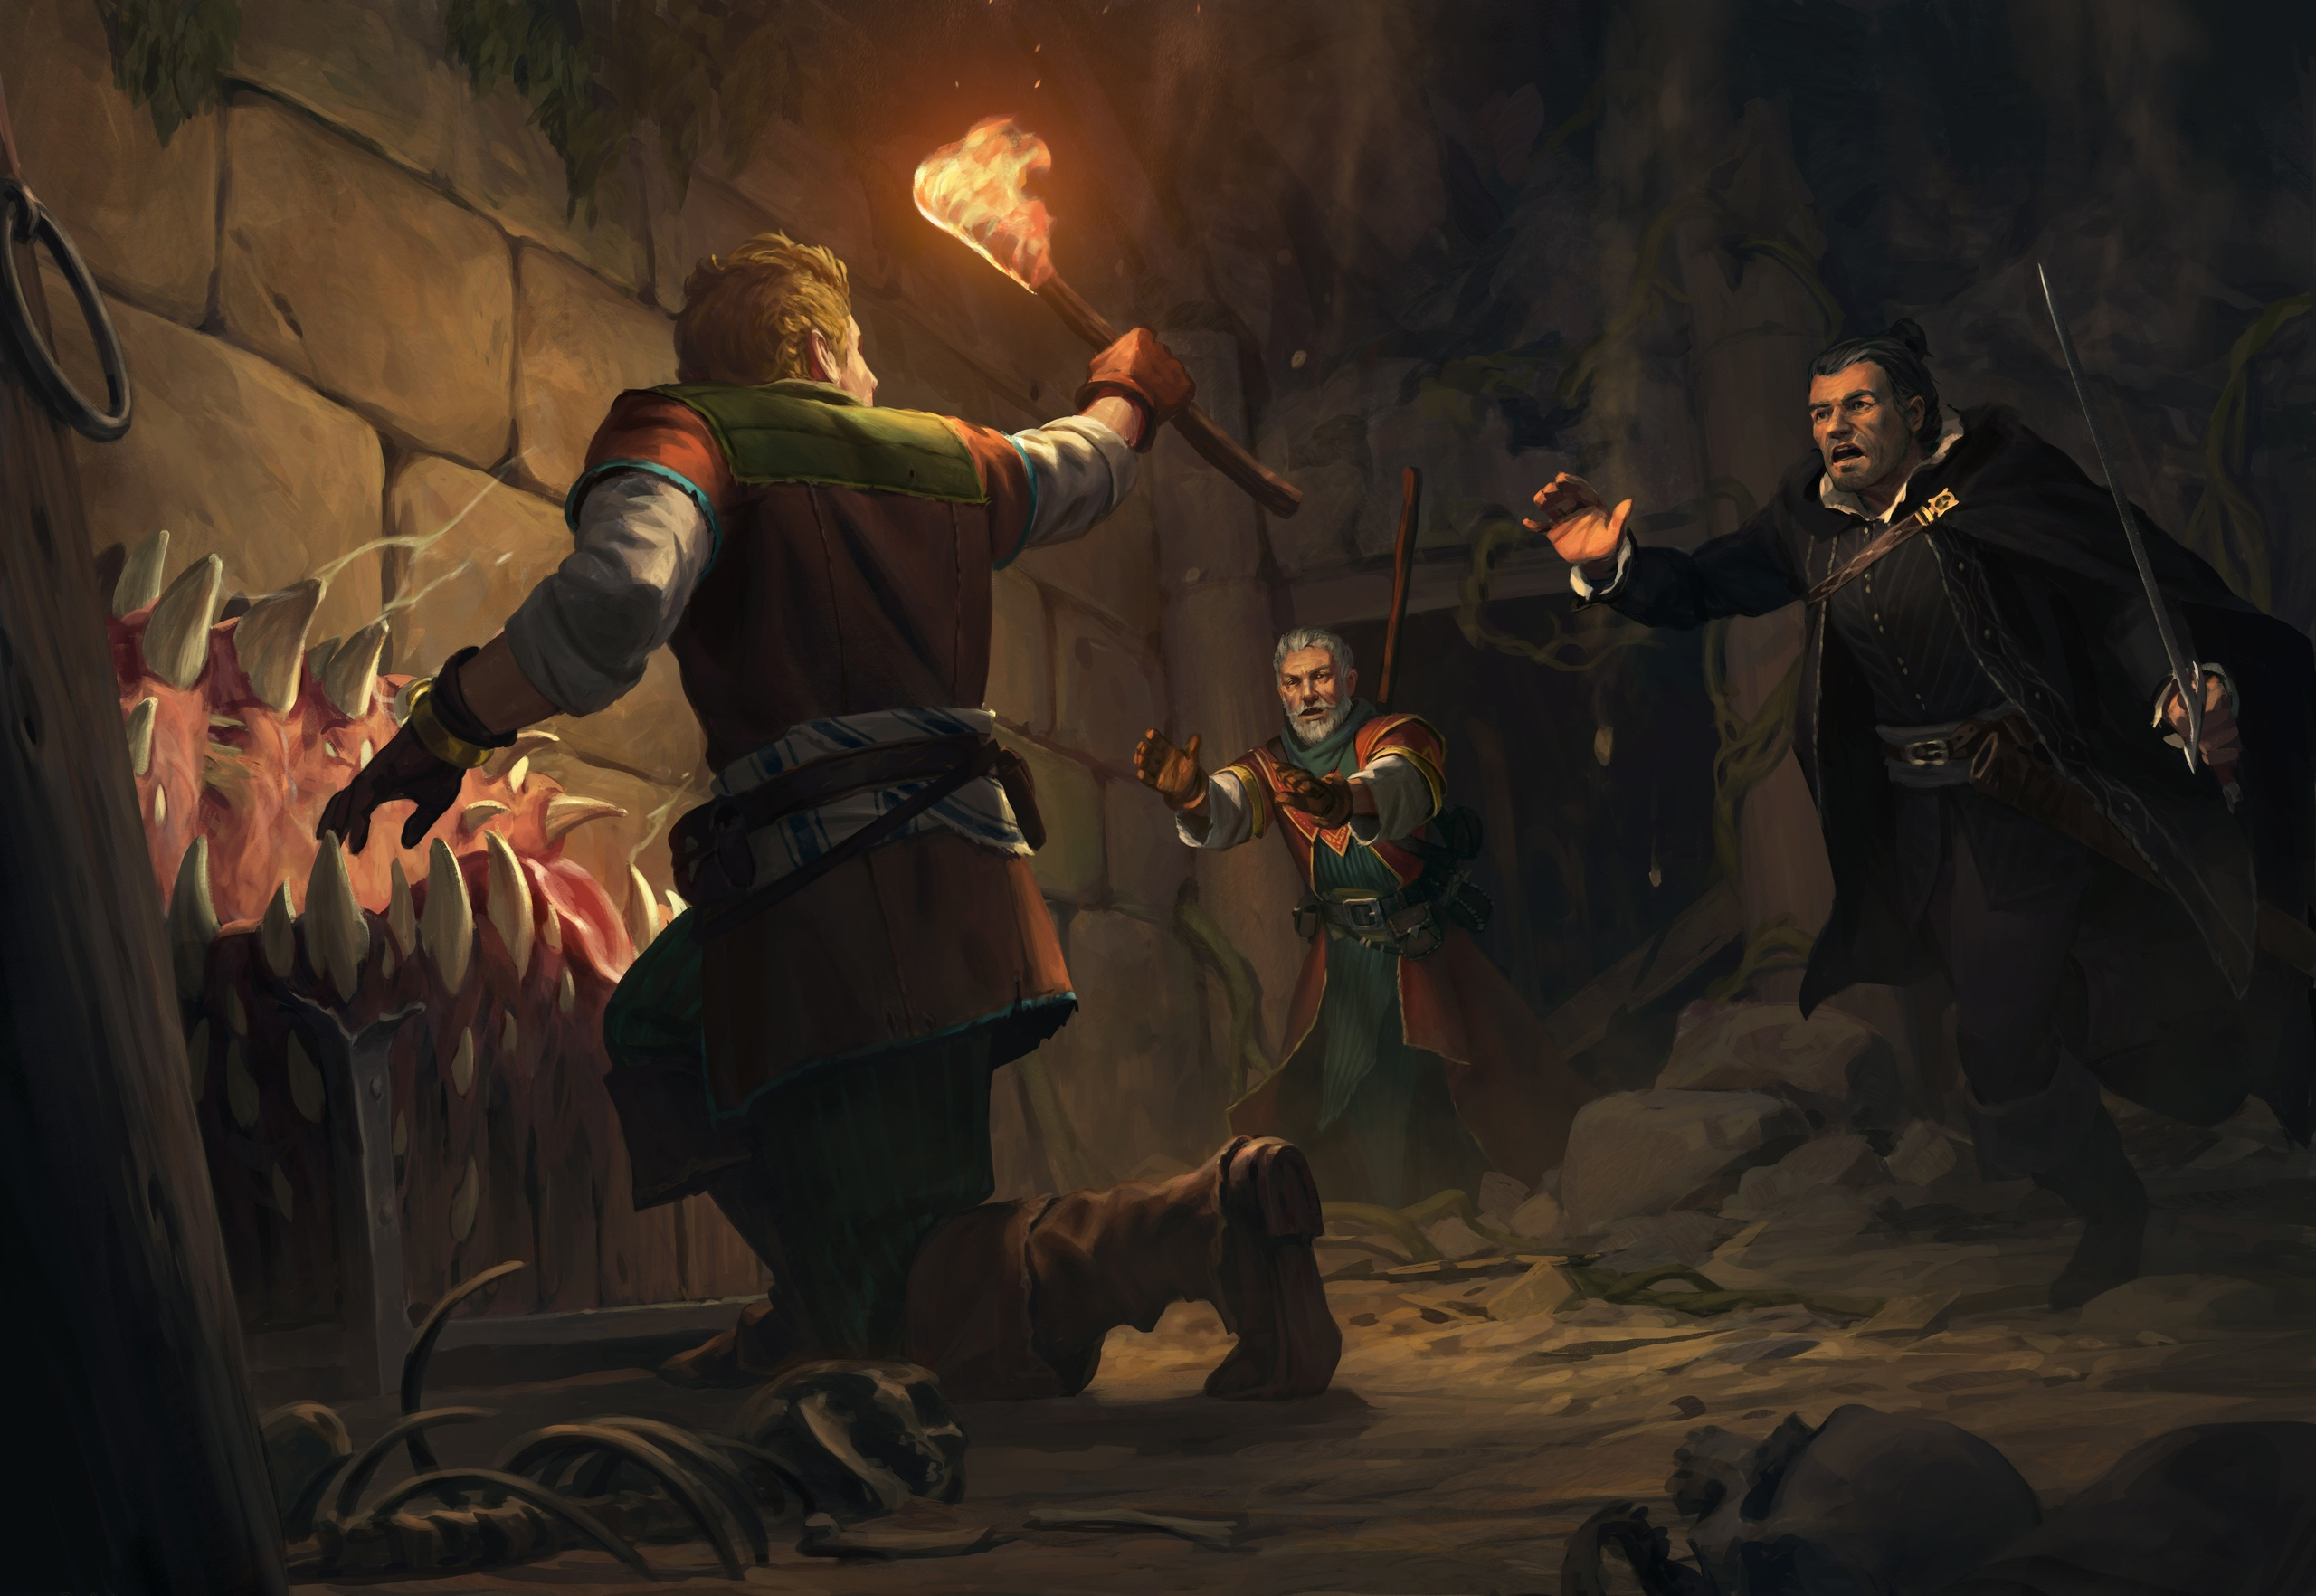 Pathfinder: Kingmaker Companions Guide - all the companions and